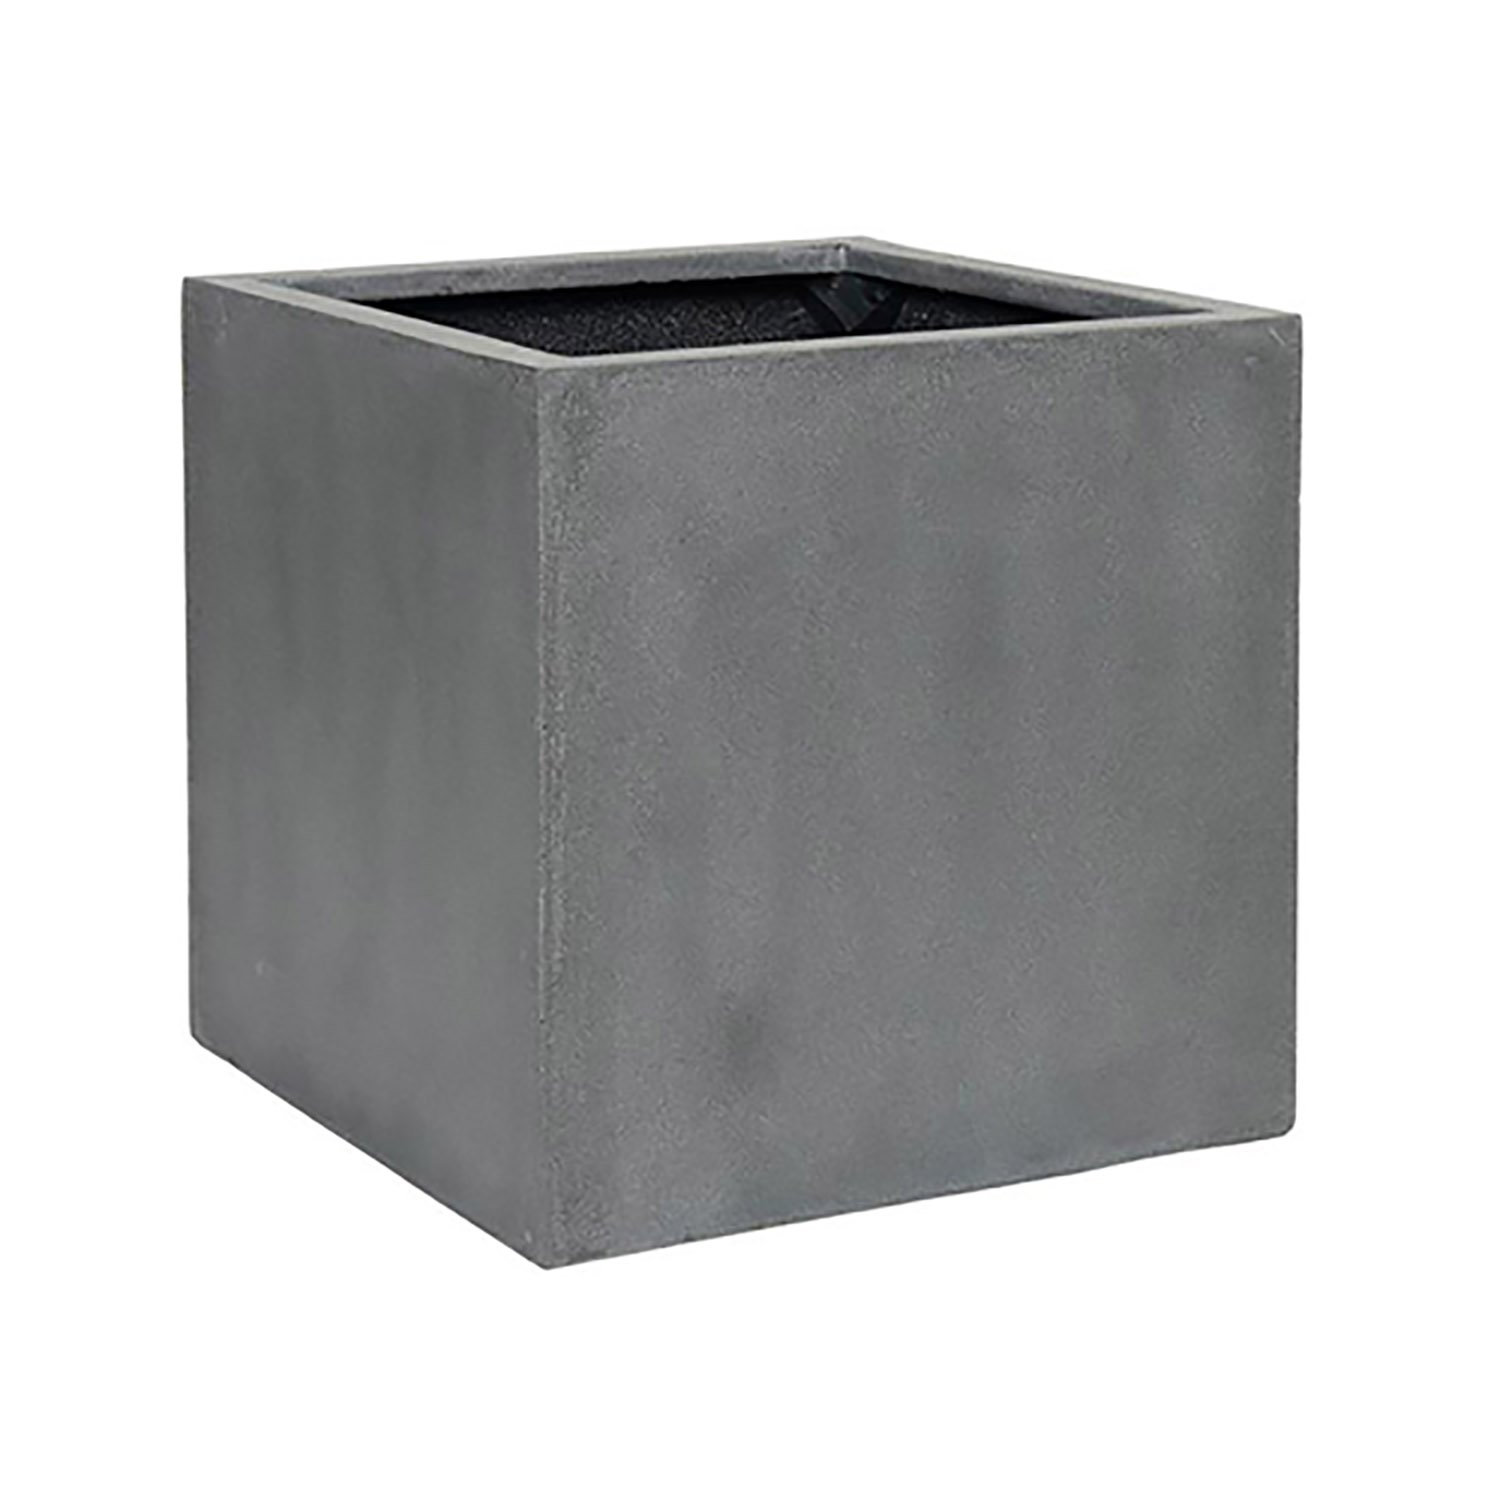 Pottery Pots Elegant Fiberstone Cube Planter Grey Pot - 16x16x16 - Indoor Outdoor By Pottery Pots by Pottery Pots